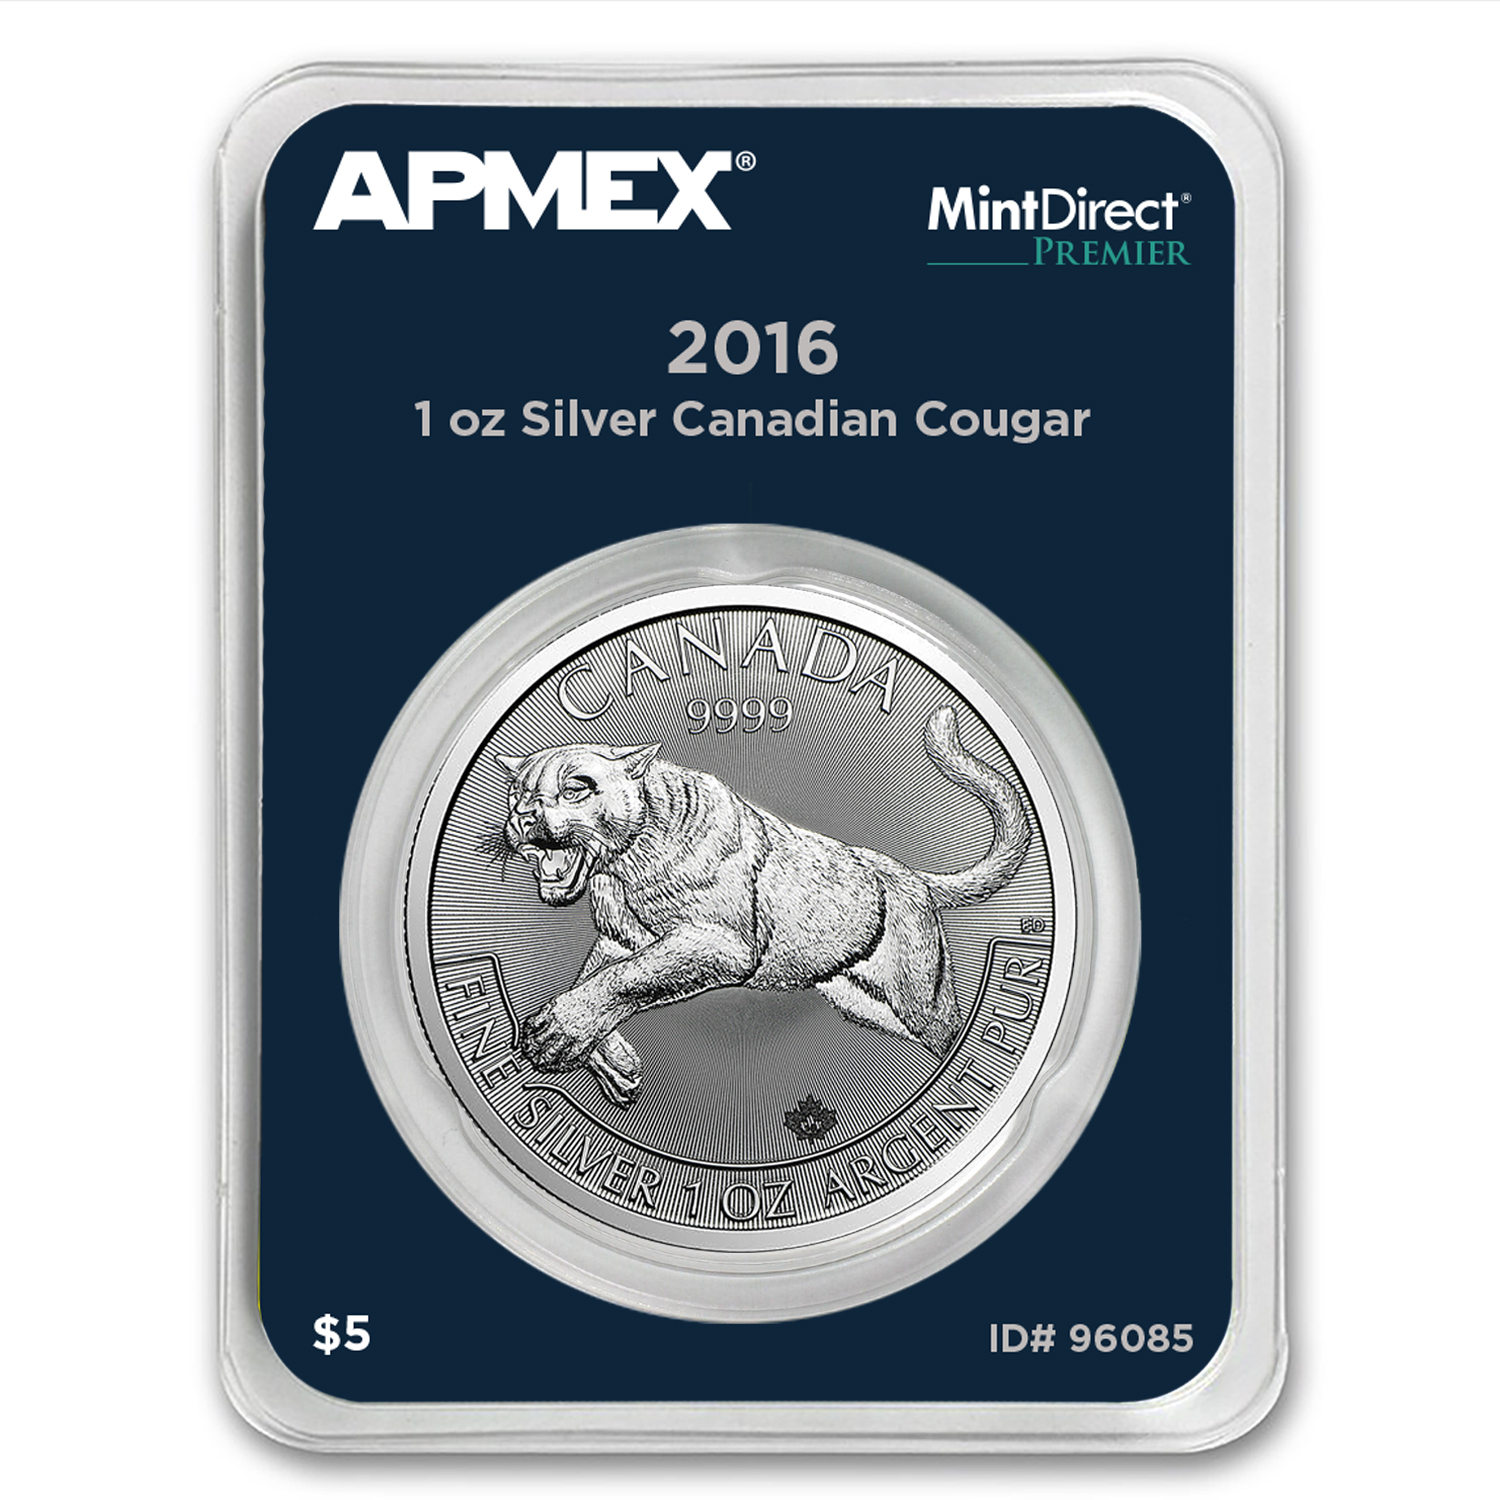 2016 RCM 1 oz Silver Predator Cougar (MintDirect® Premier Single)